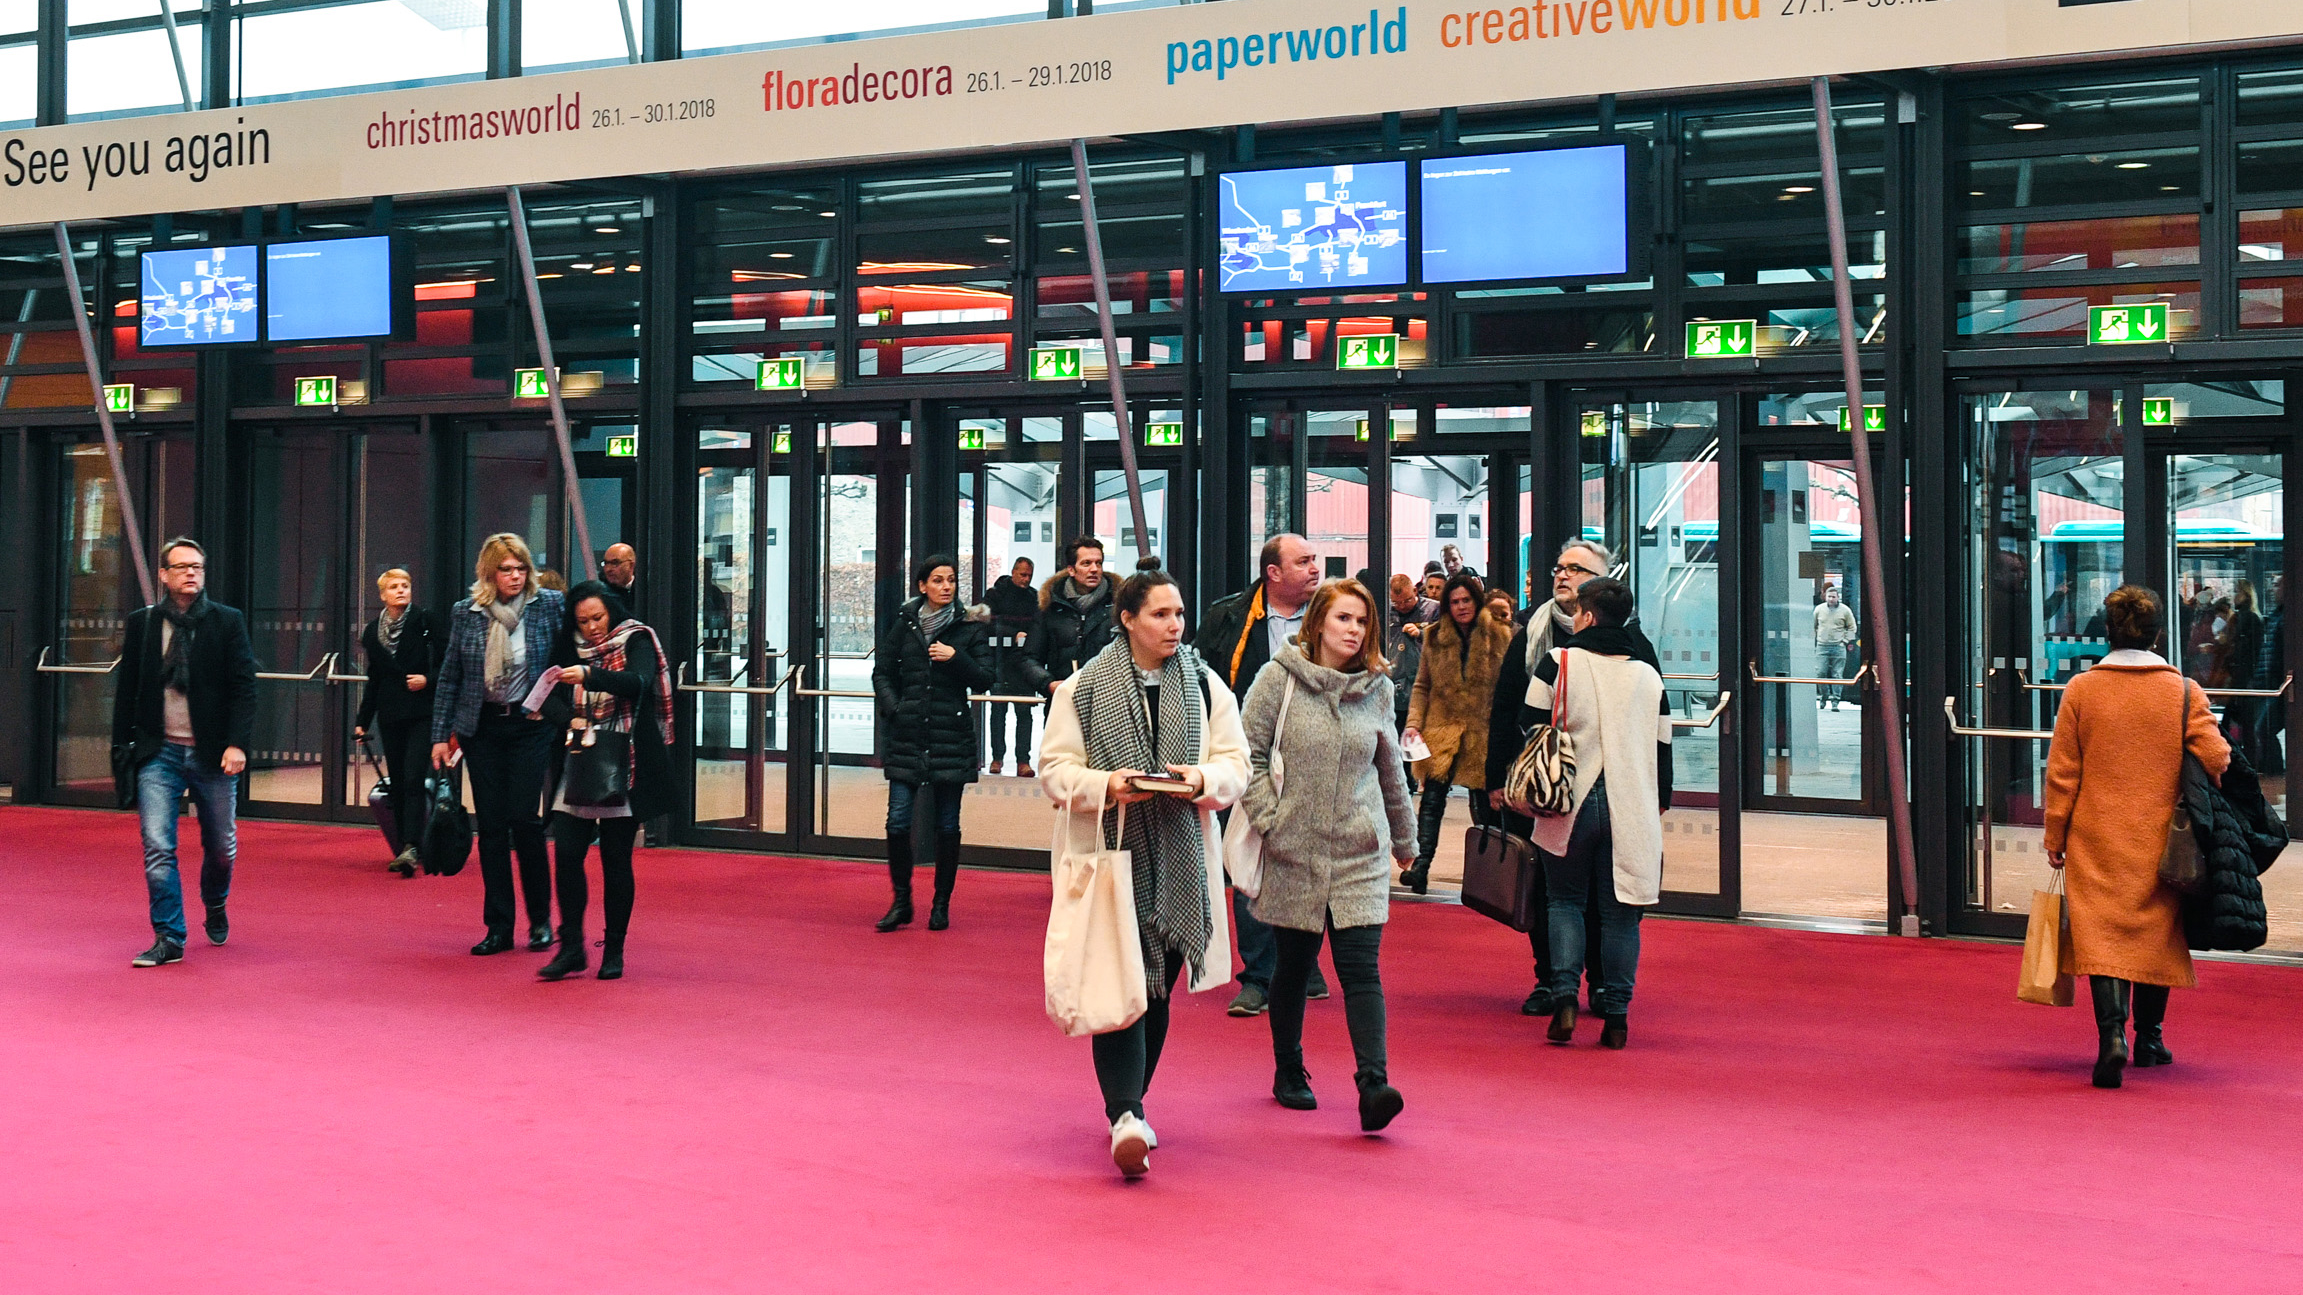 Trade visitors to the Frankfurt Exhibition Center